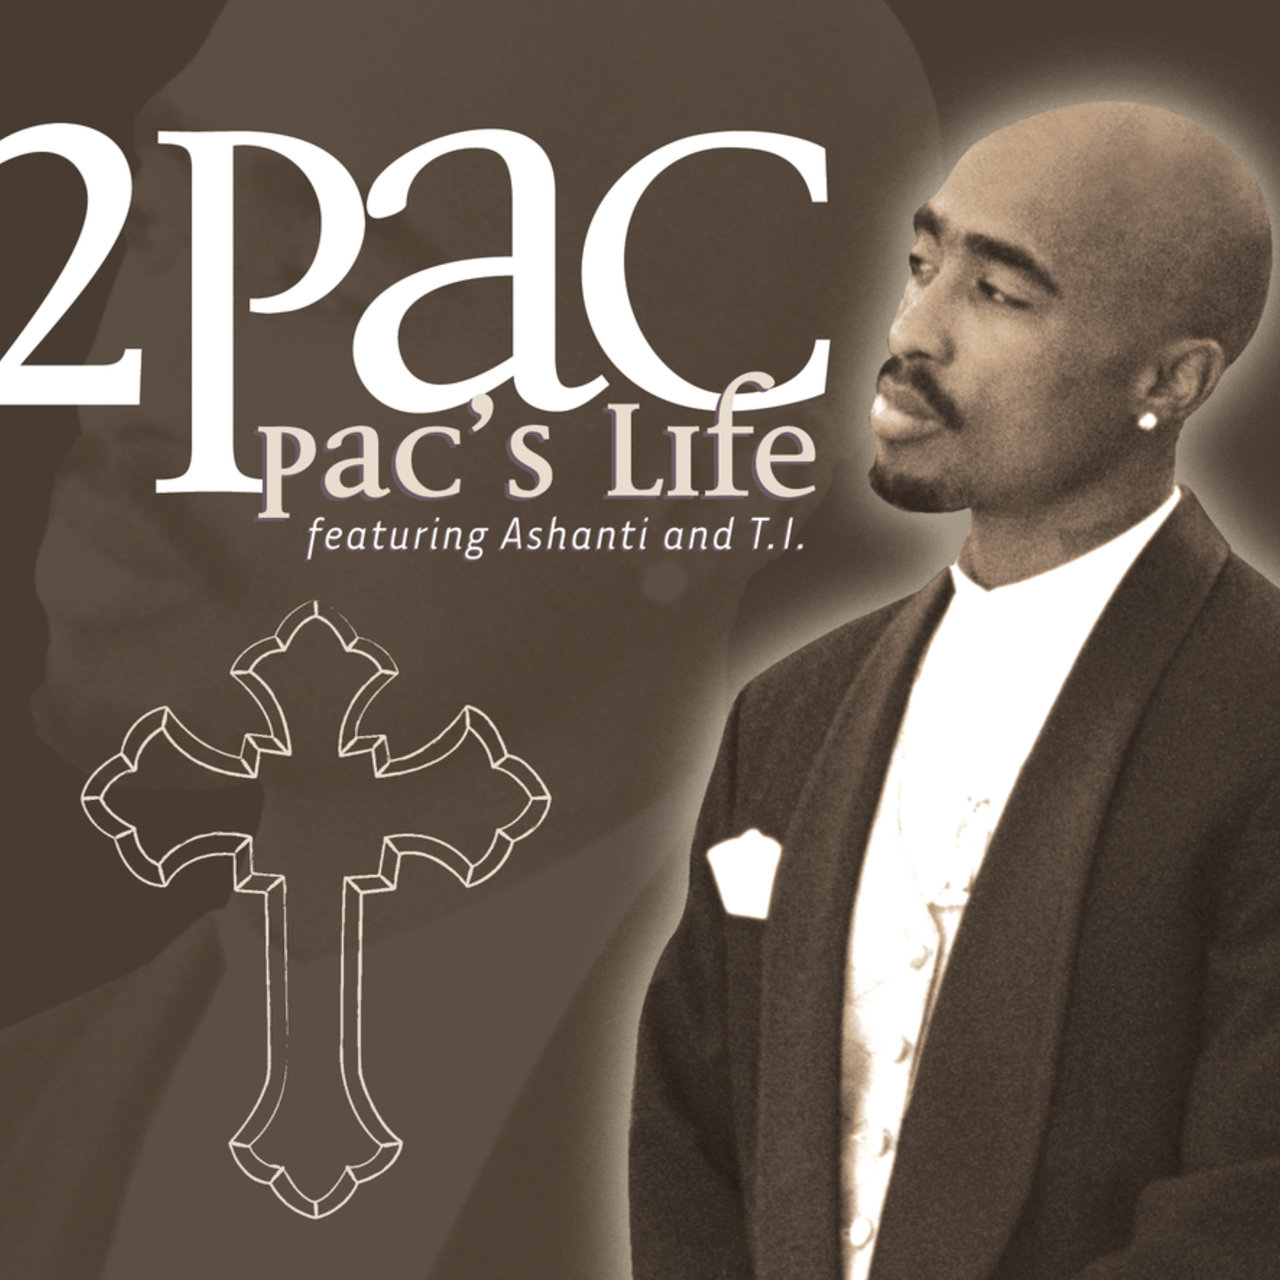 Pac's Life (International Version (Explicit))